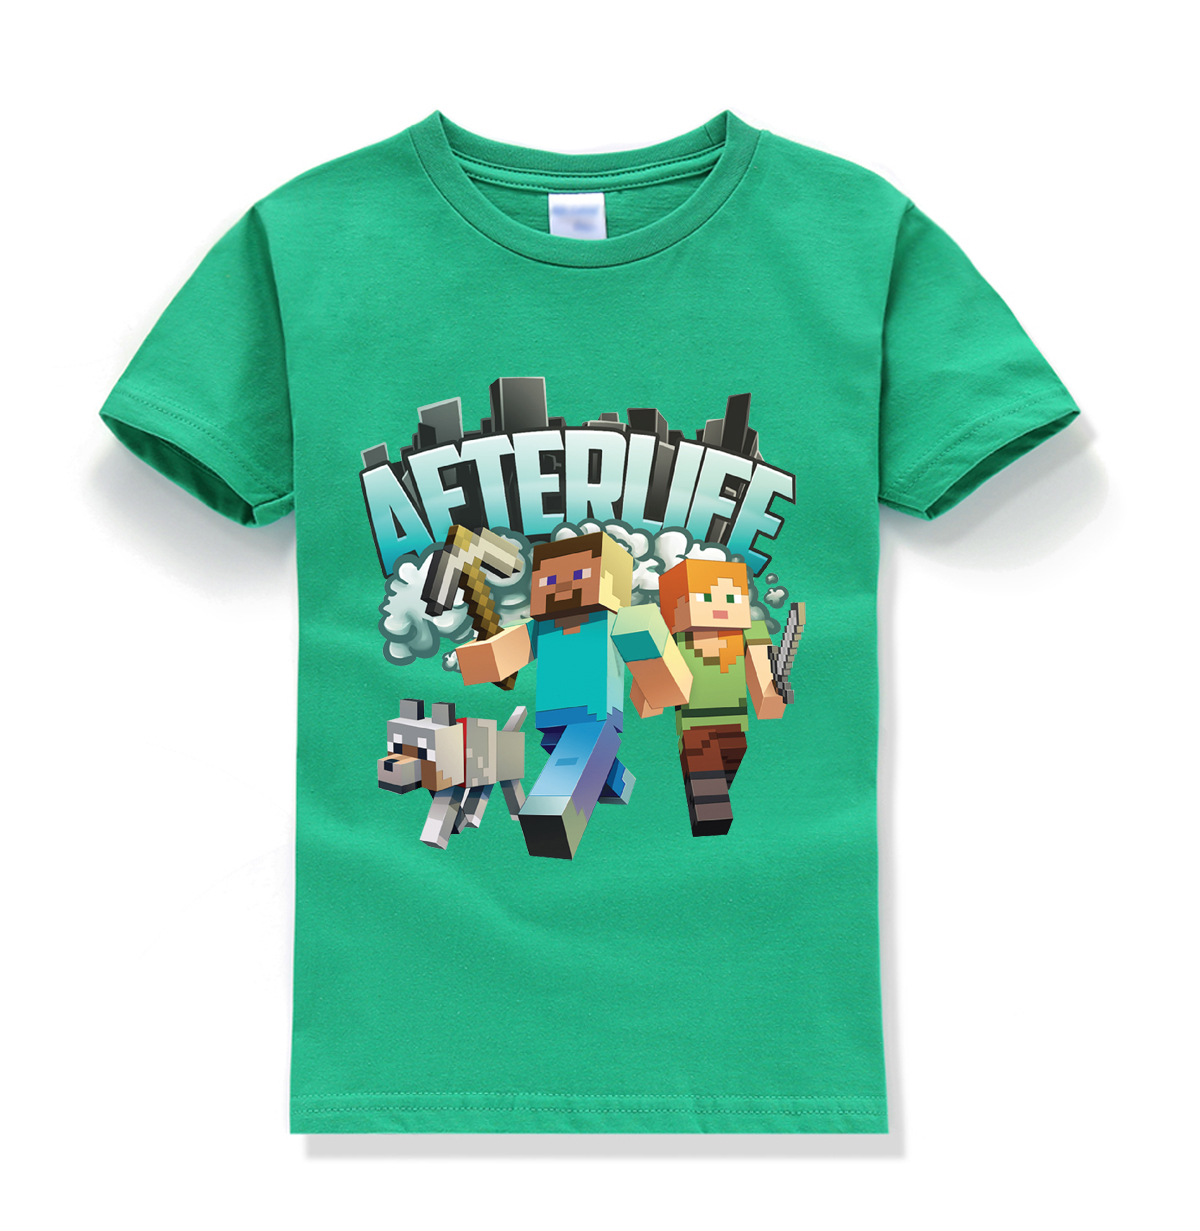 2018new arrival fantasy robots cartoon pattern printed cotton summer t-shirts baby boys top soft clothing high quality kid tees2018new arrival fantasy robots cartoon pattern printed cotton summer t-shirts baby boys top soft clothing high quality kid tees